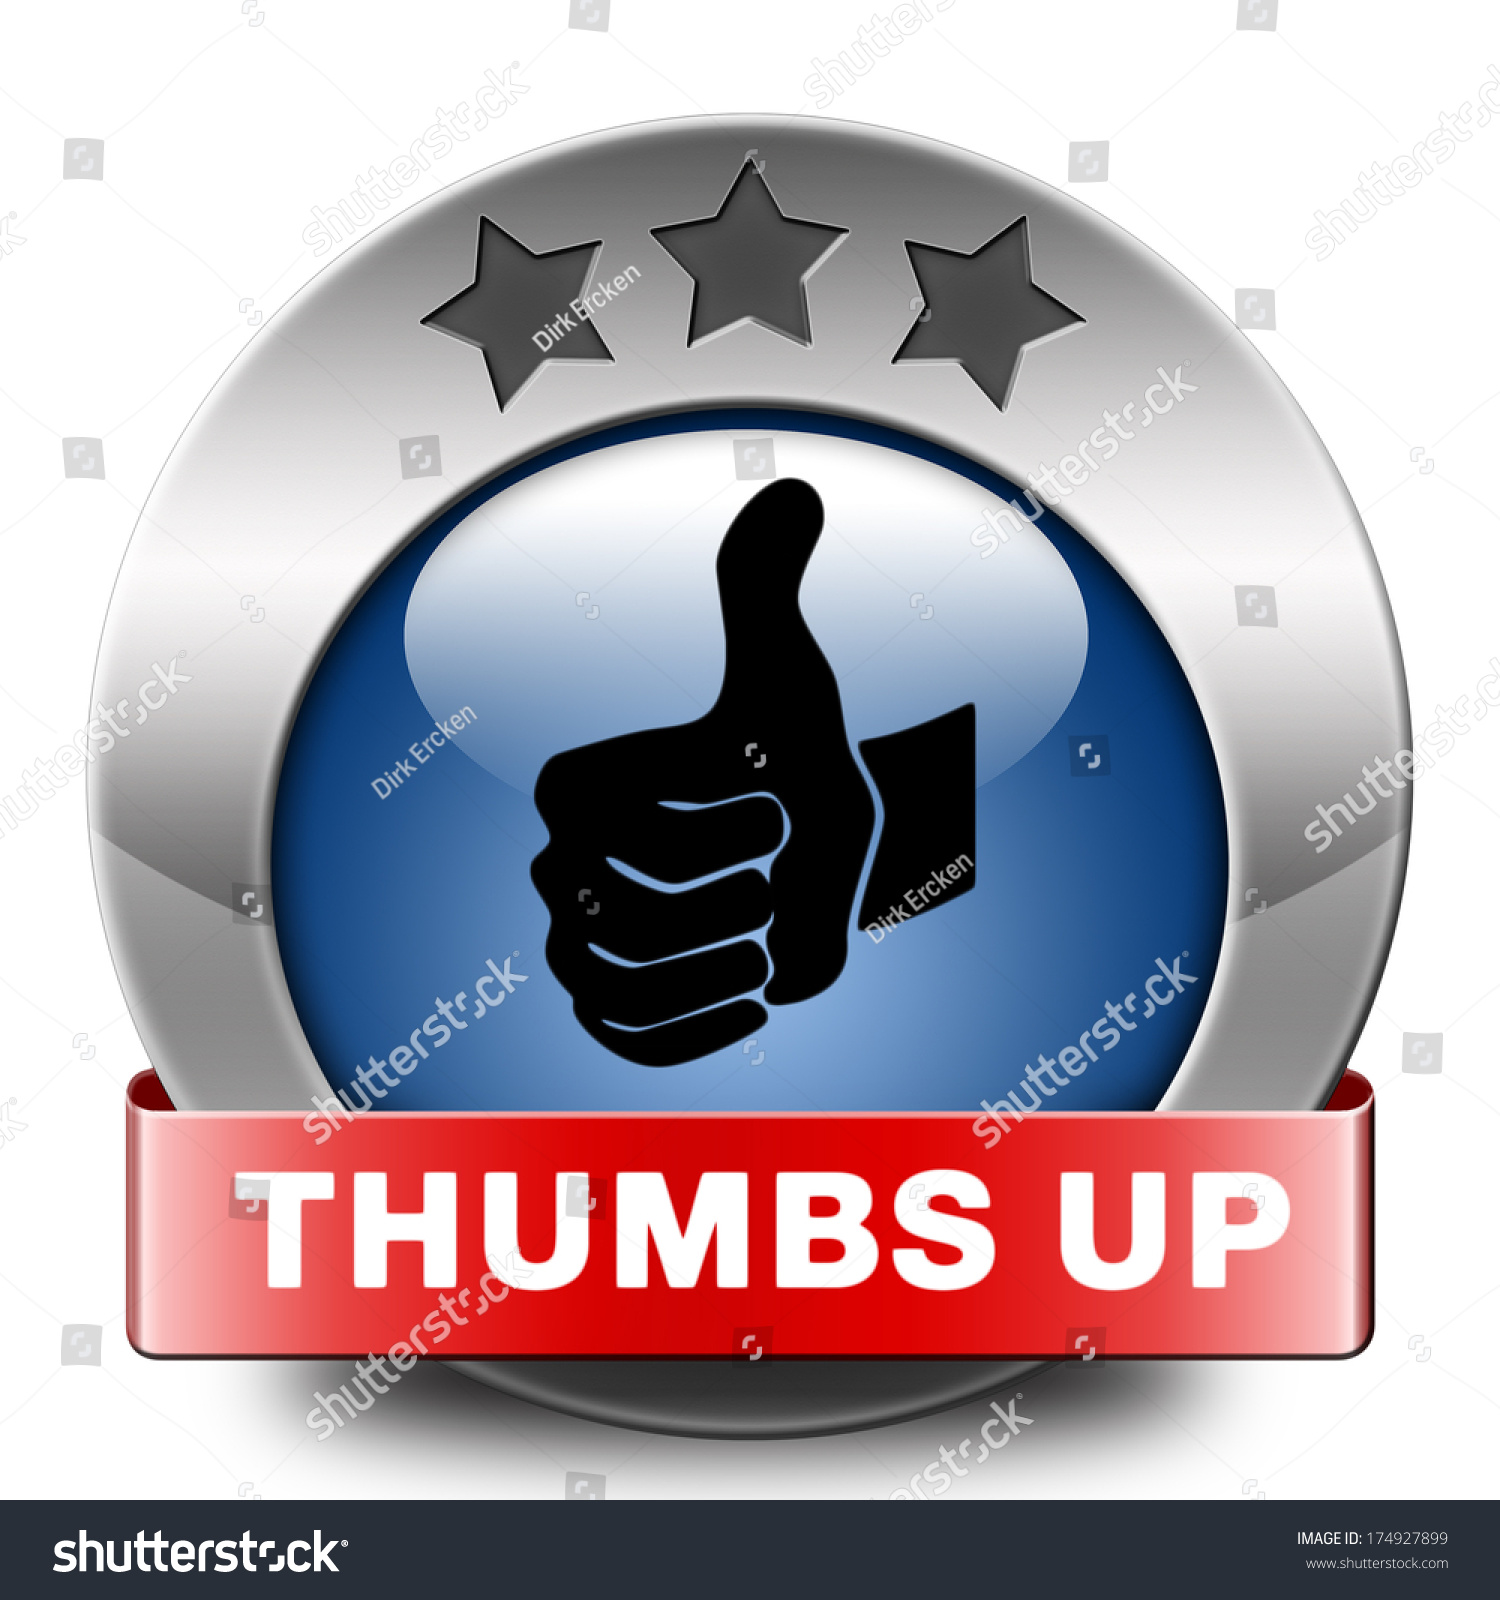 stock photo thumbs up good and excellent work job well done and task finished and ac plished sign or icon